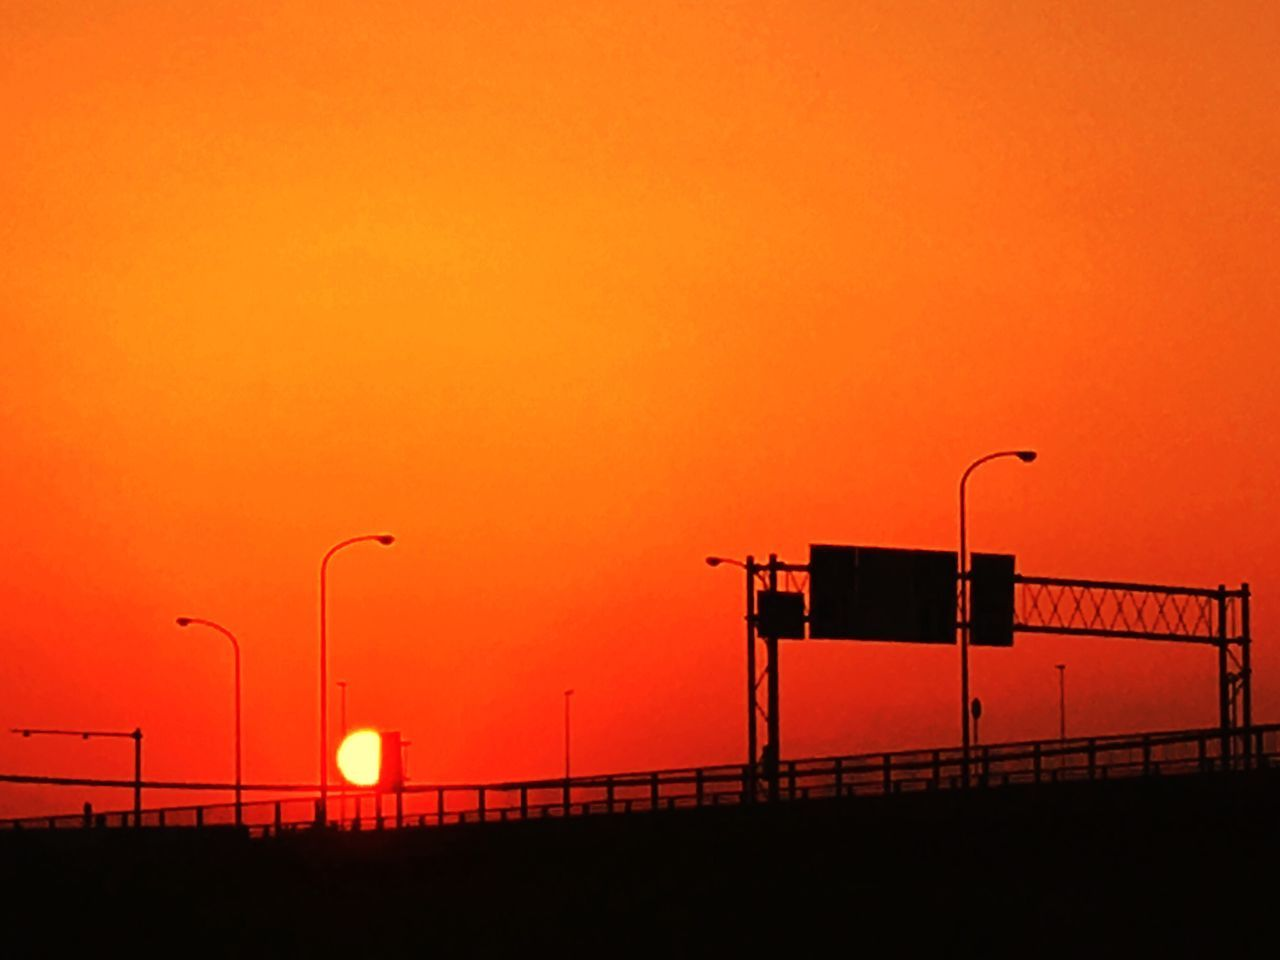 Sunset Orange Color Silhouette Street Light Nature Beauty In Nature Tranquil Scene No People Outdoors Scenics Sky Architecture Day